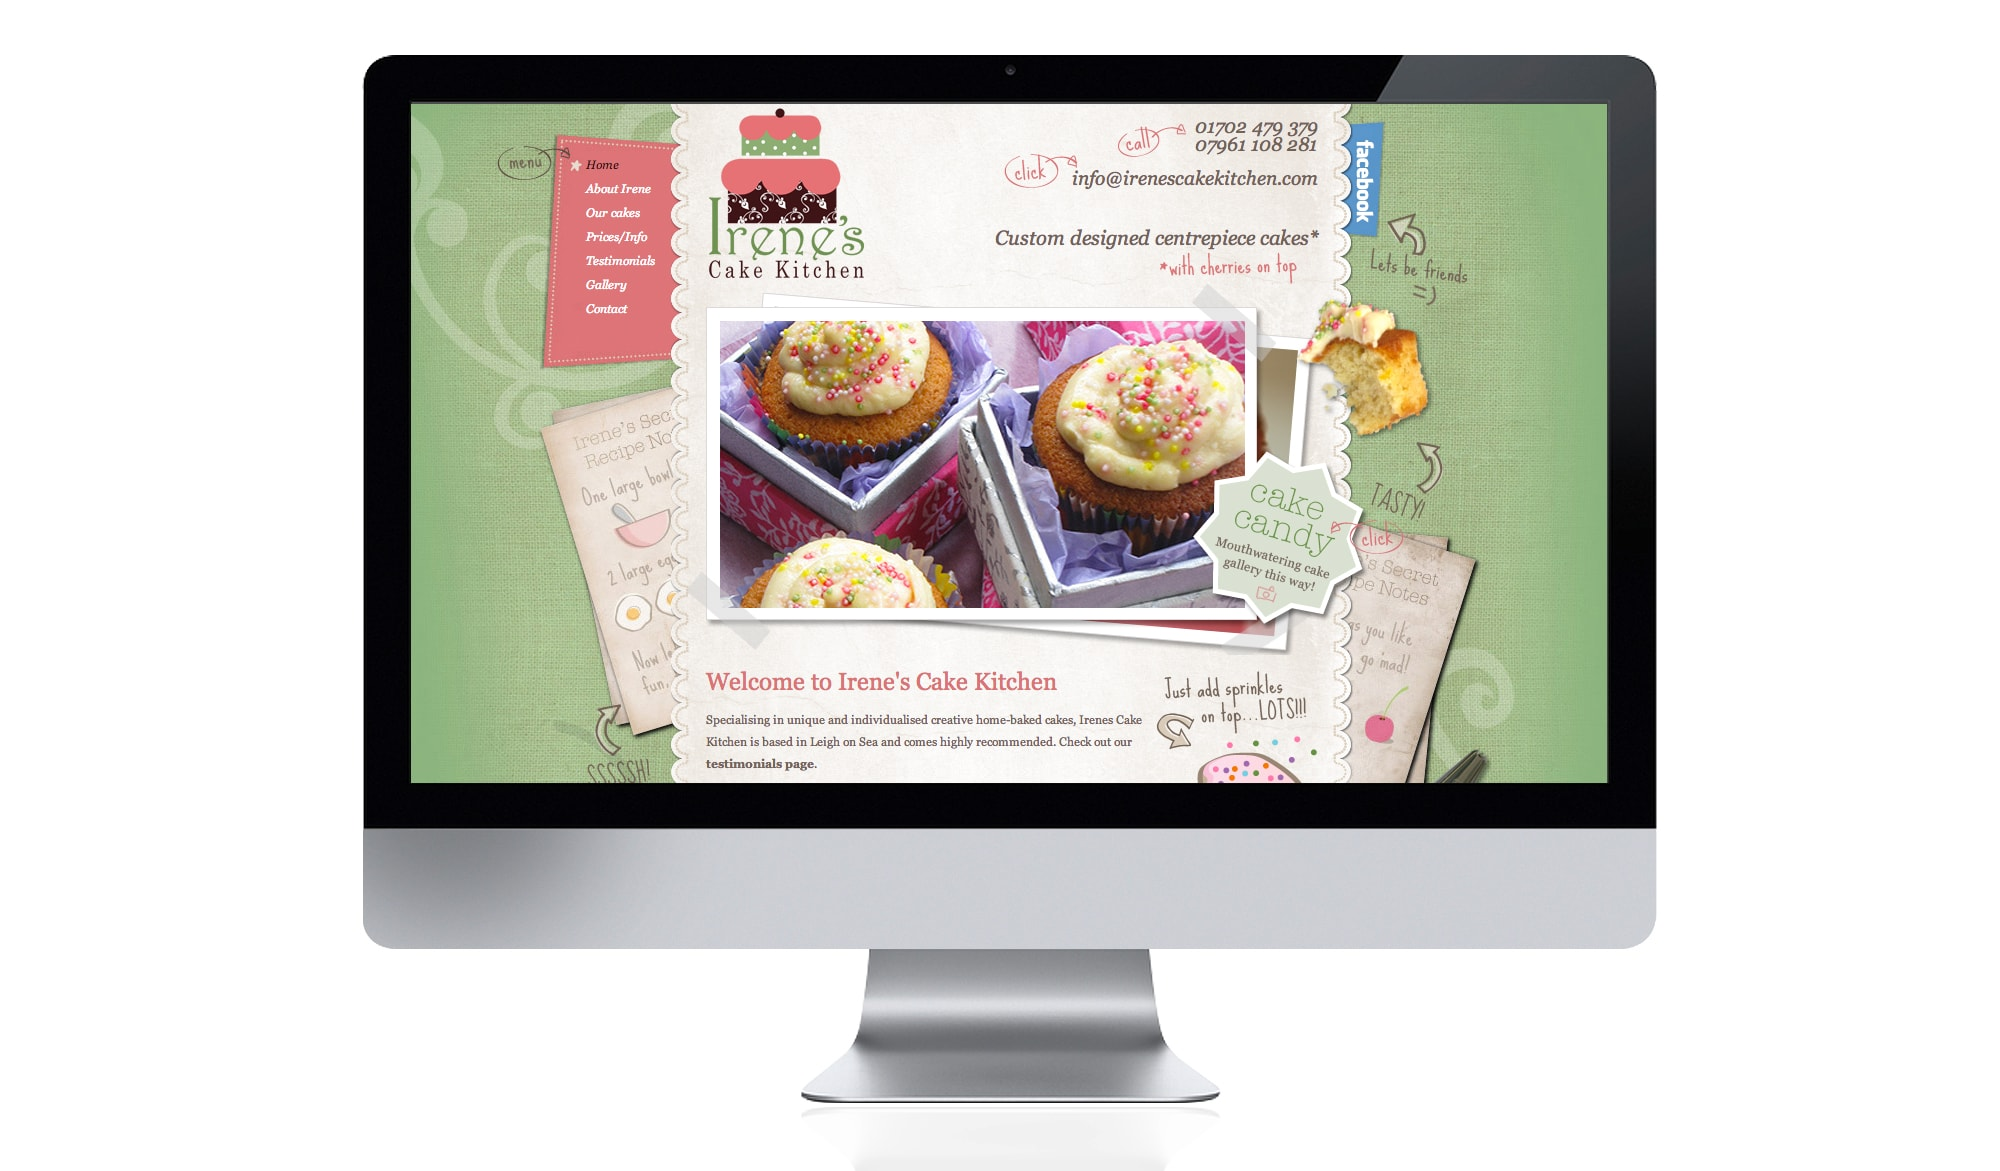 Irenes Cake Kitchen - home page